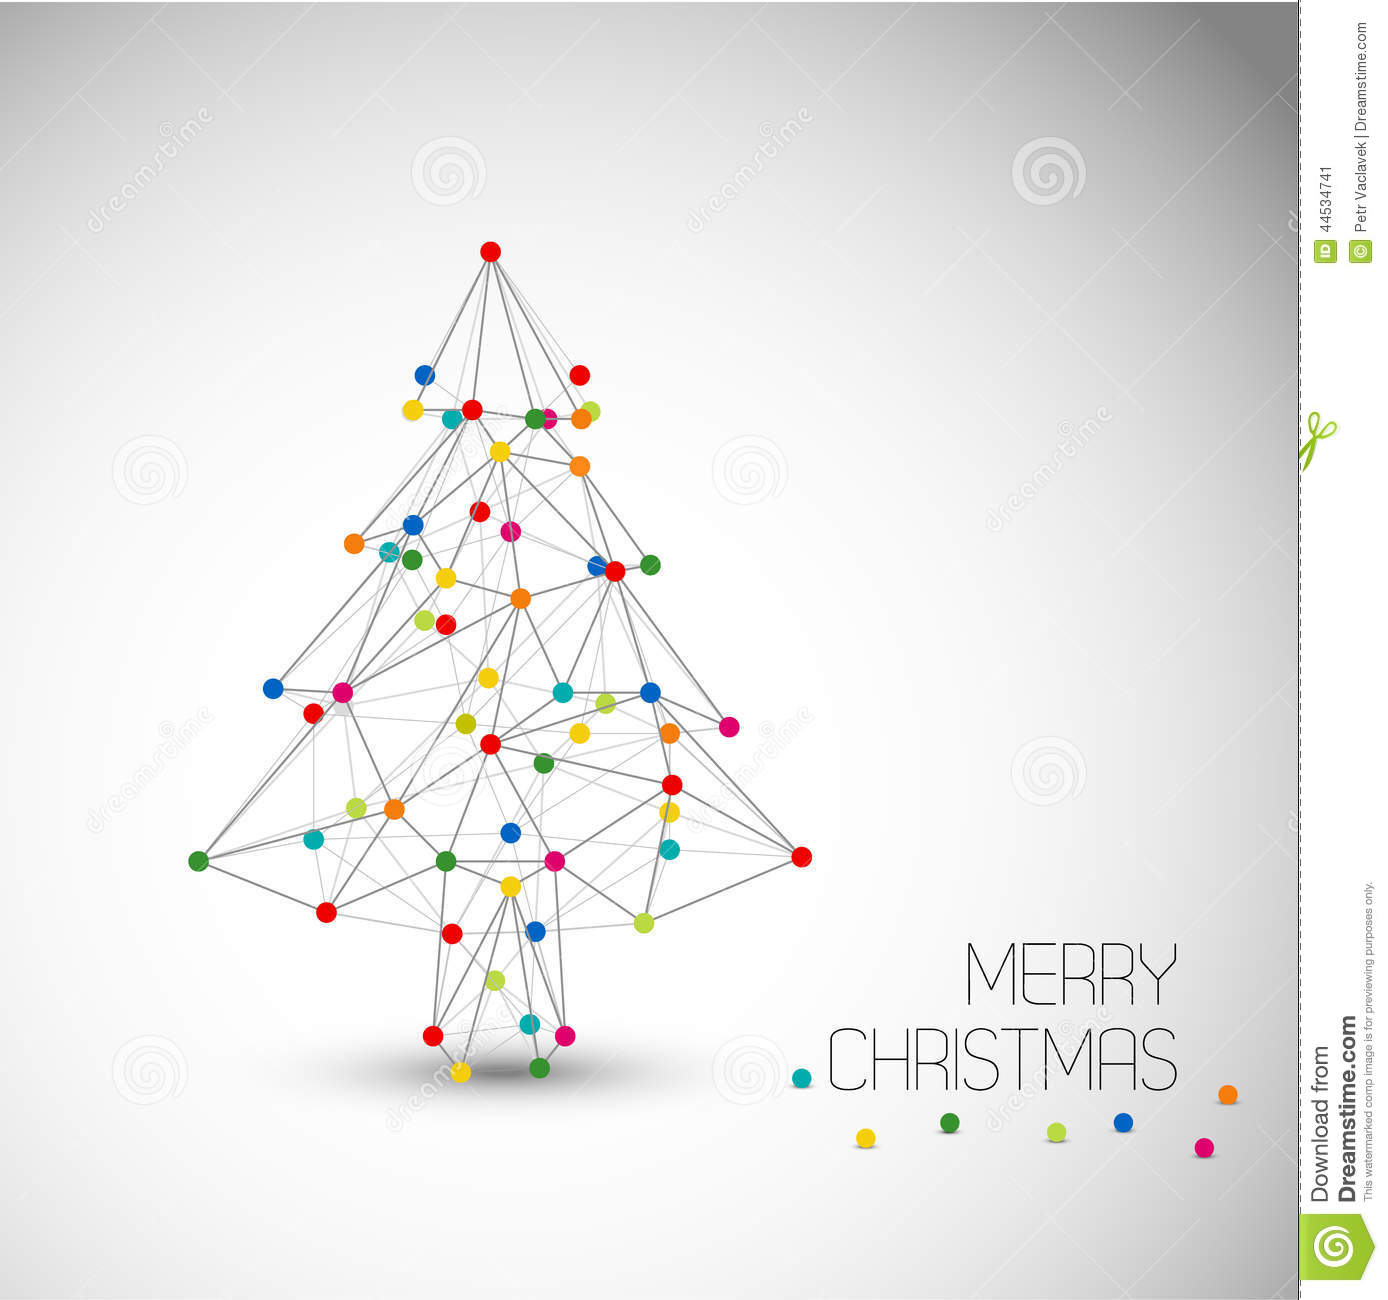 Vector Card With Abstract Christmas Tree Made From Lines